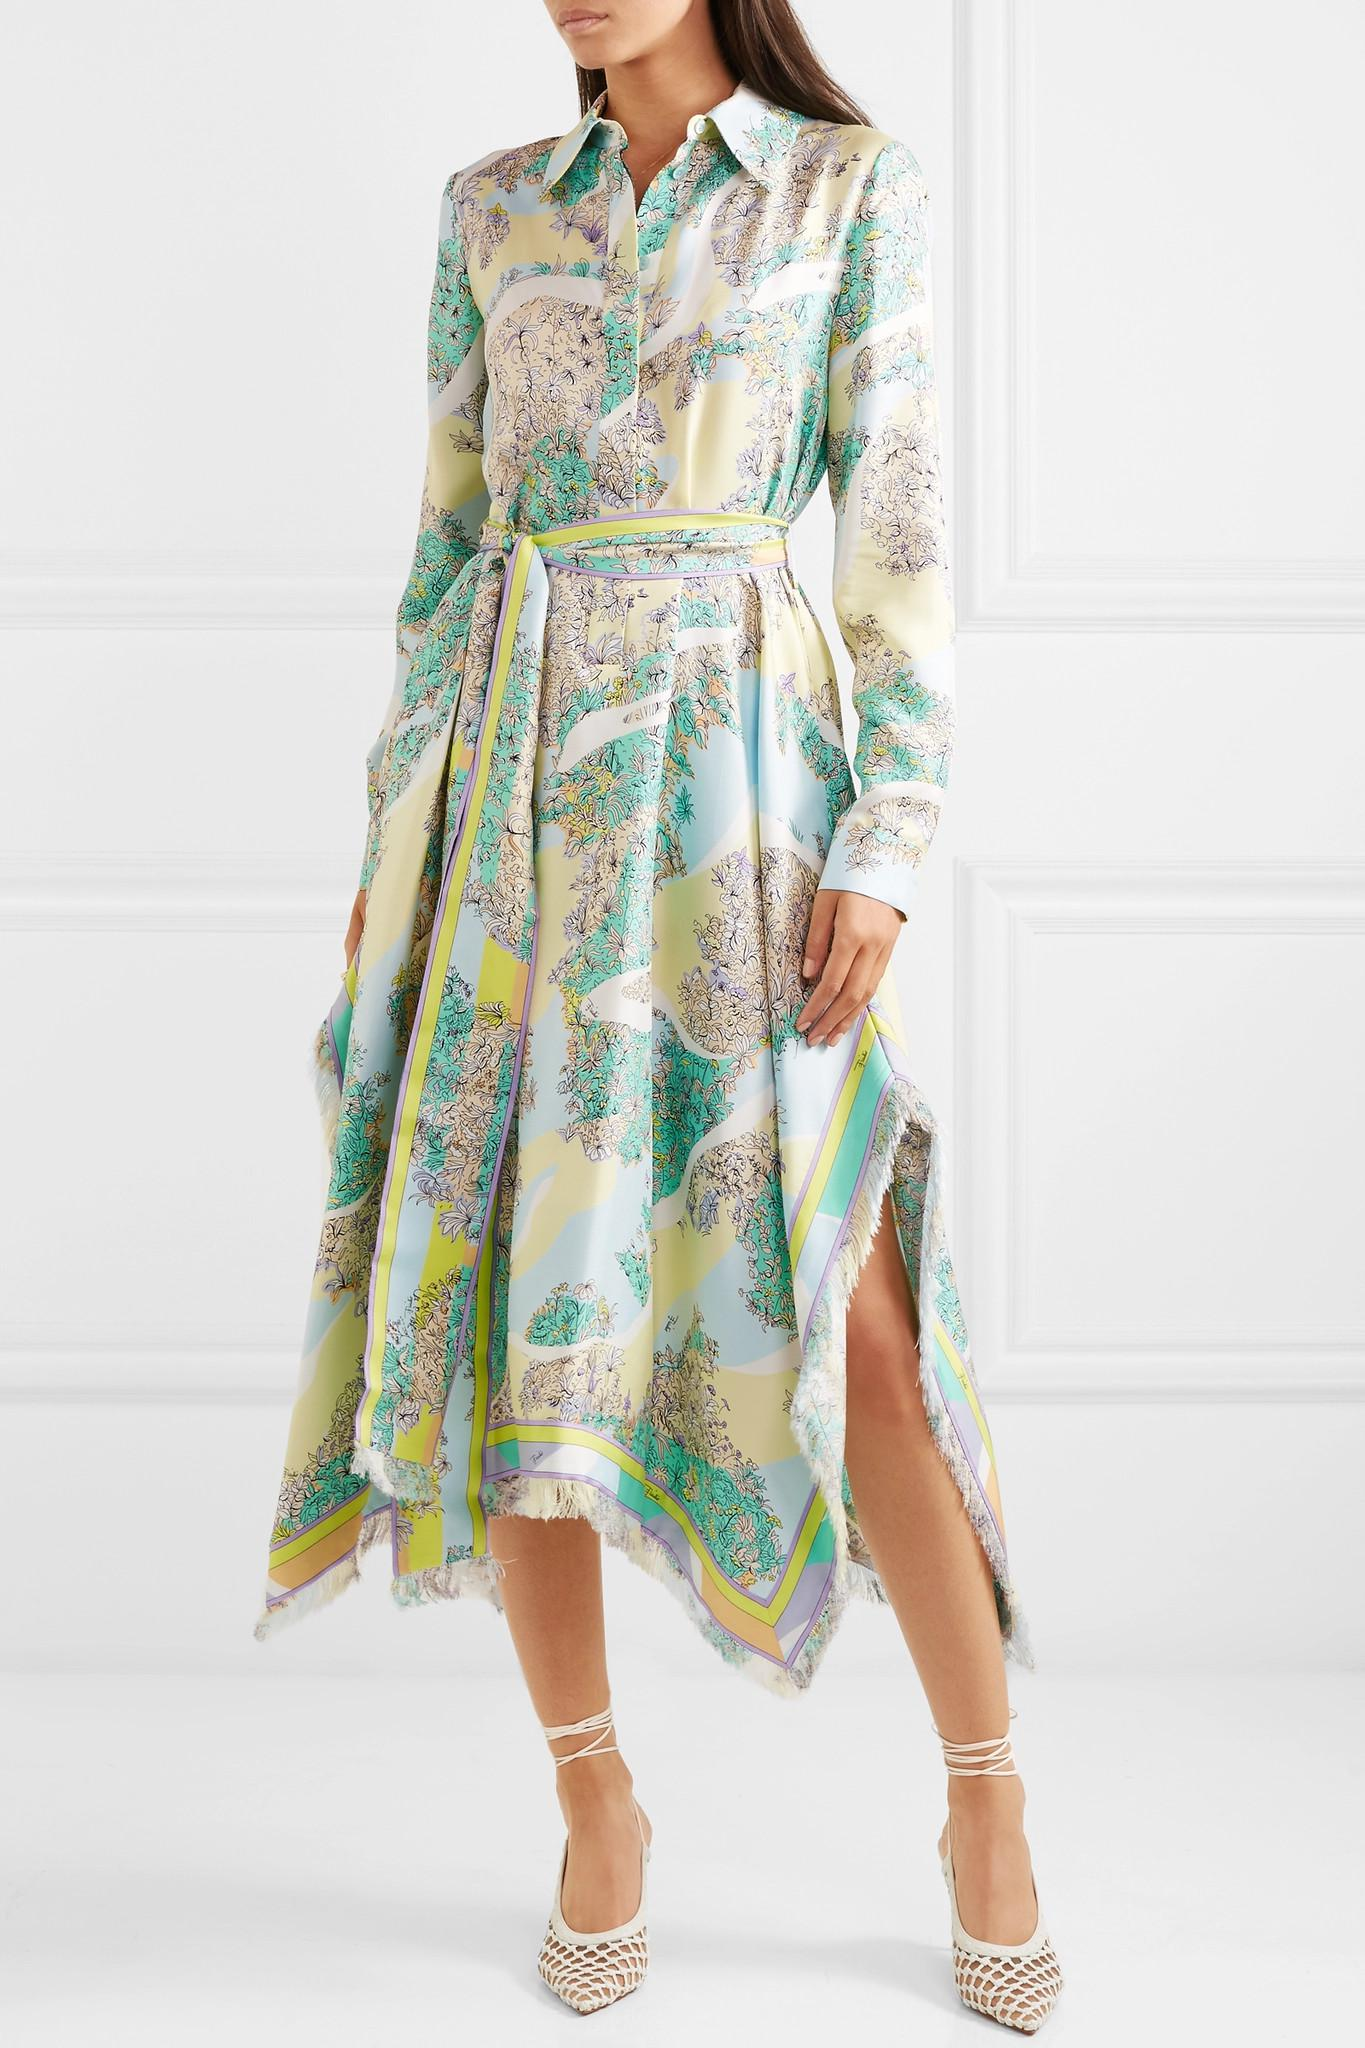 Fringed Printed Silk-twill Midi Dress - Green Emilio Pucci xBvQq